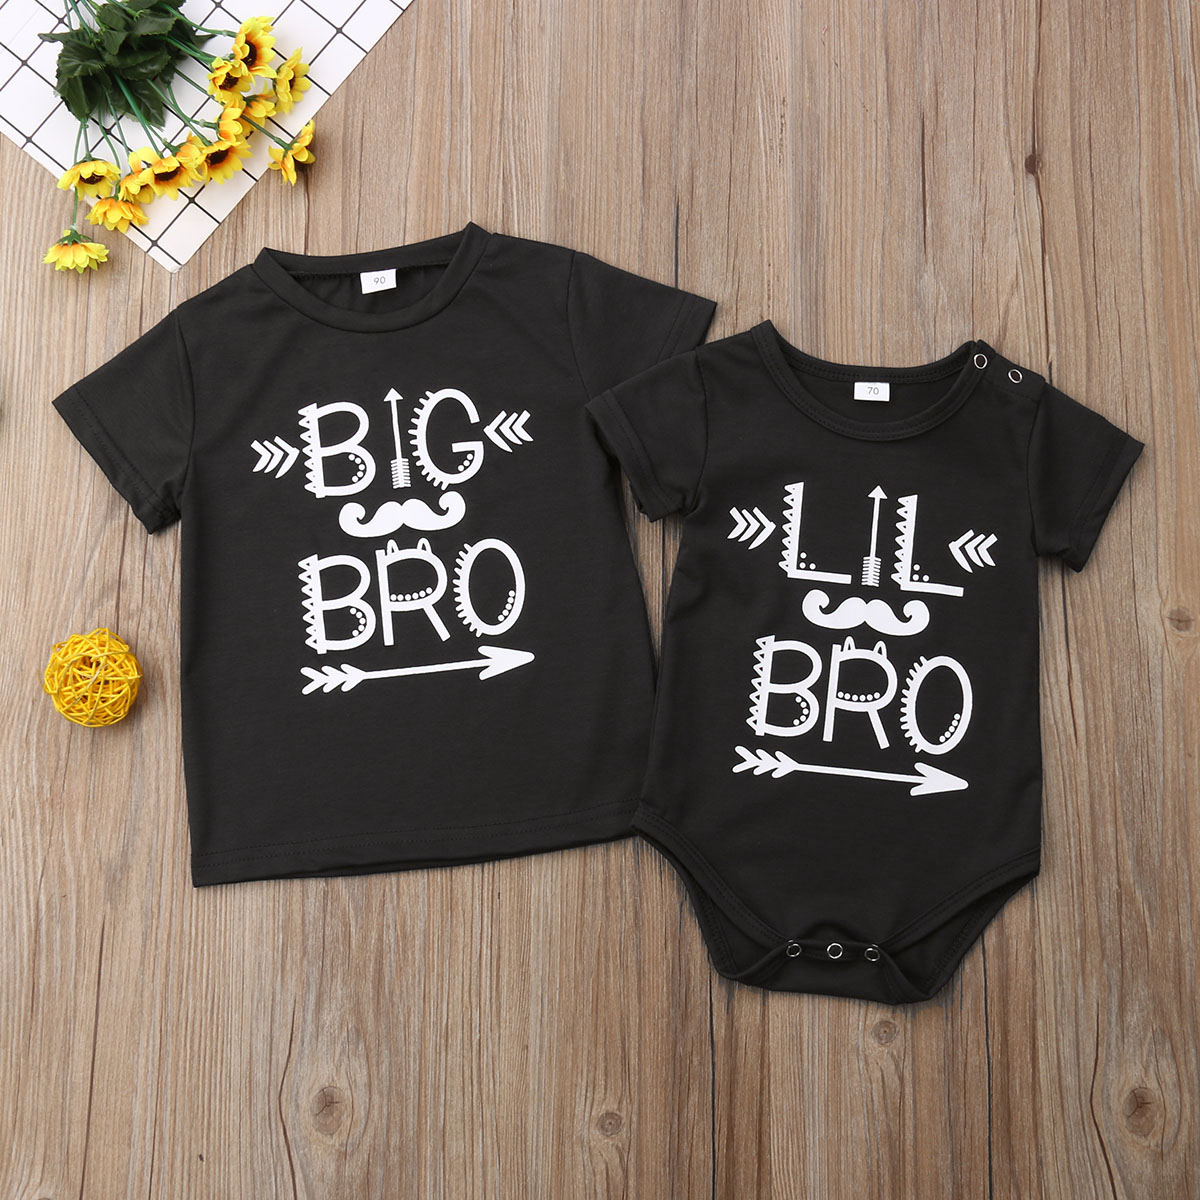 2020 Infant Baby Little Brother Romper 0-18M Big Brother T-shirt 2--5T Family Match Clothes Outfits T Shirt